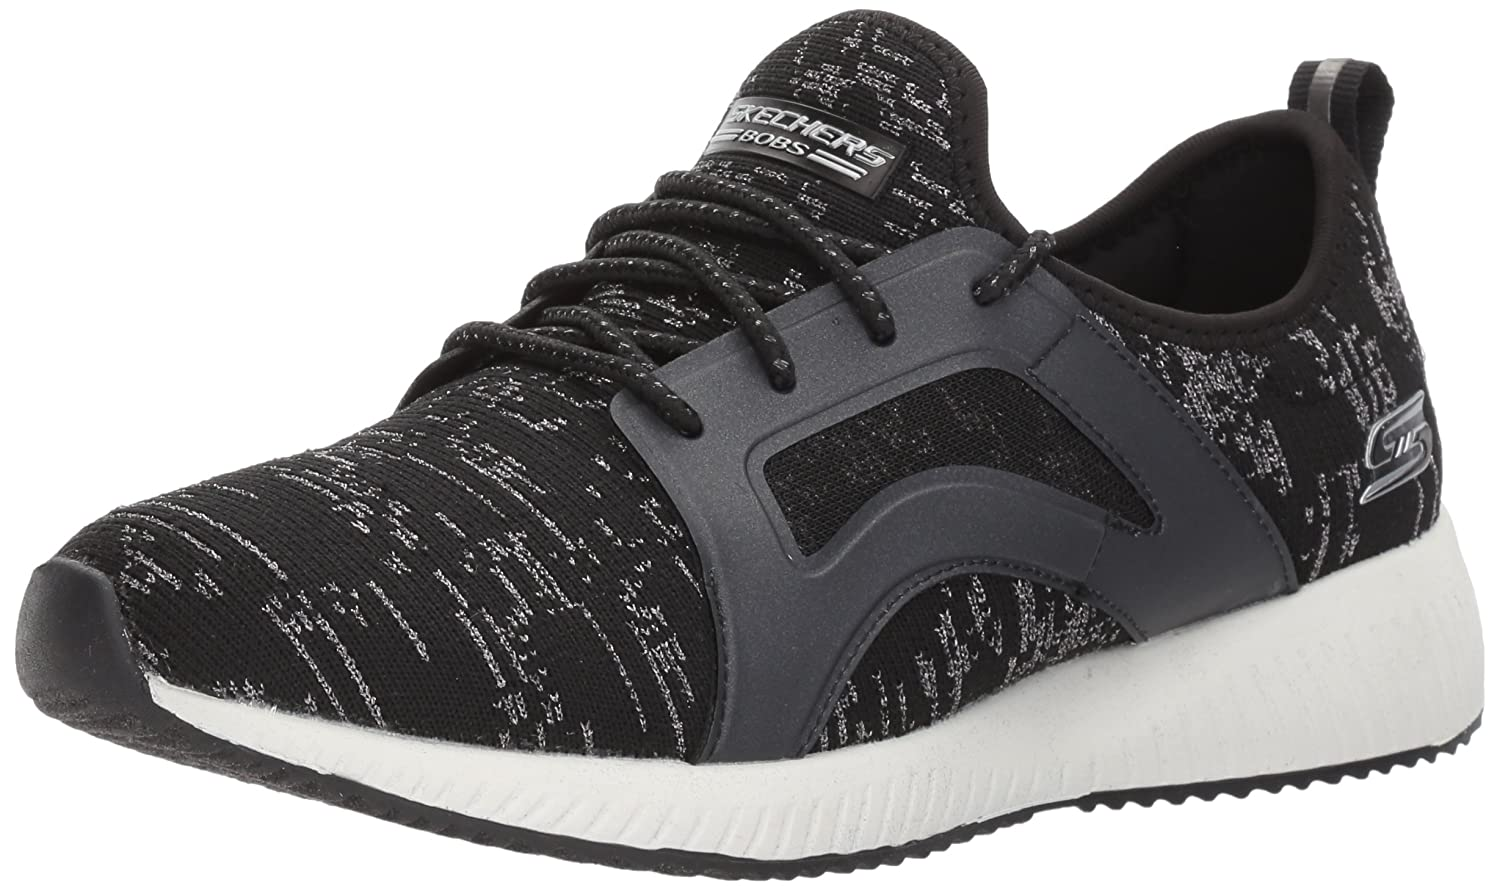 Skechers BOBS From Woherren BOBS Squad-Glossy Finish Fashion Turnschuhe schwarz 6.5 M US